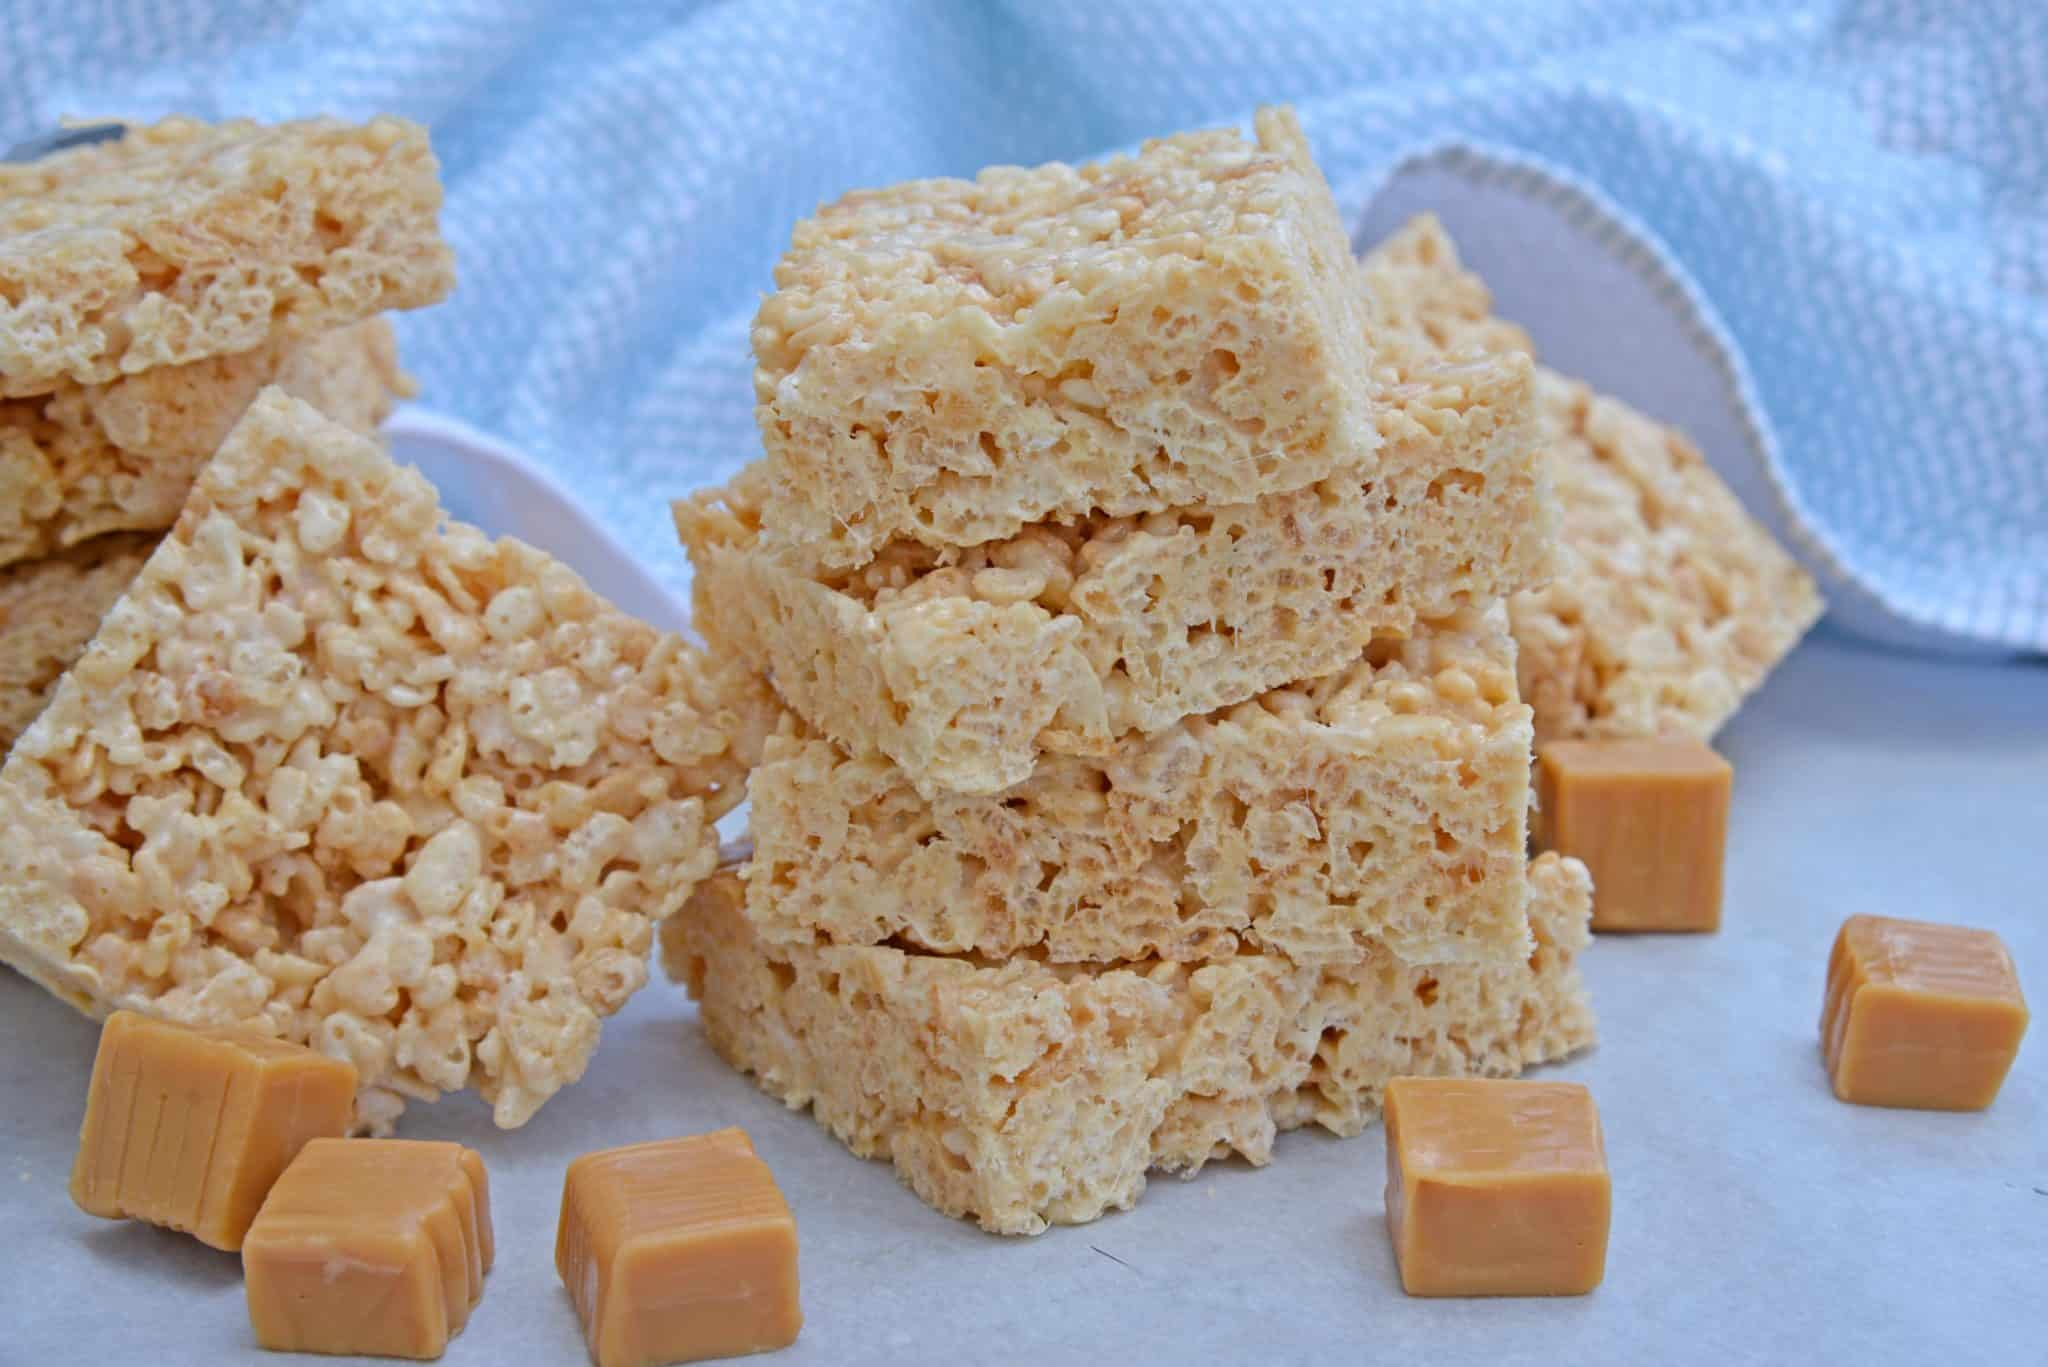 Caramel Rice Krispie Treats are a new twist on an old favorite! These homemade Rice Krispie Treats are so good and miles better then the store bought ones! #ricekrispietreats #ricekrispiebars www.savoryexperiments.com